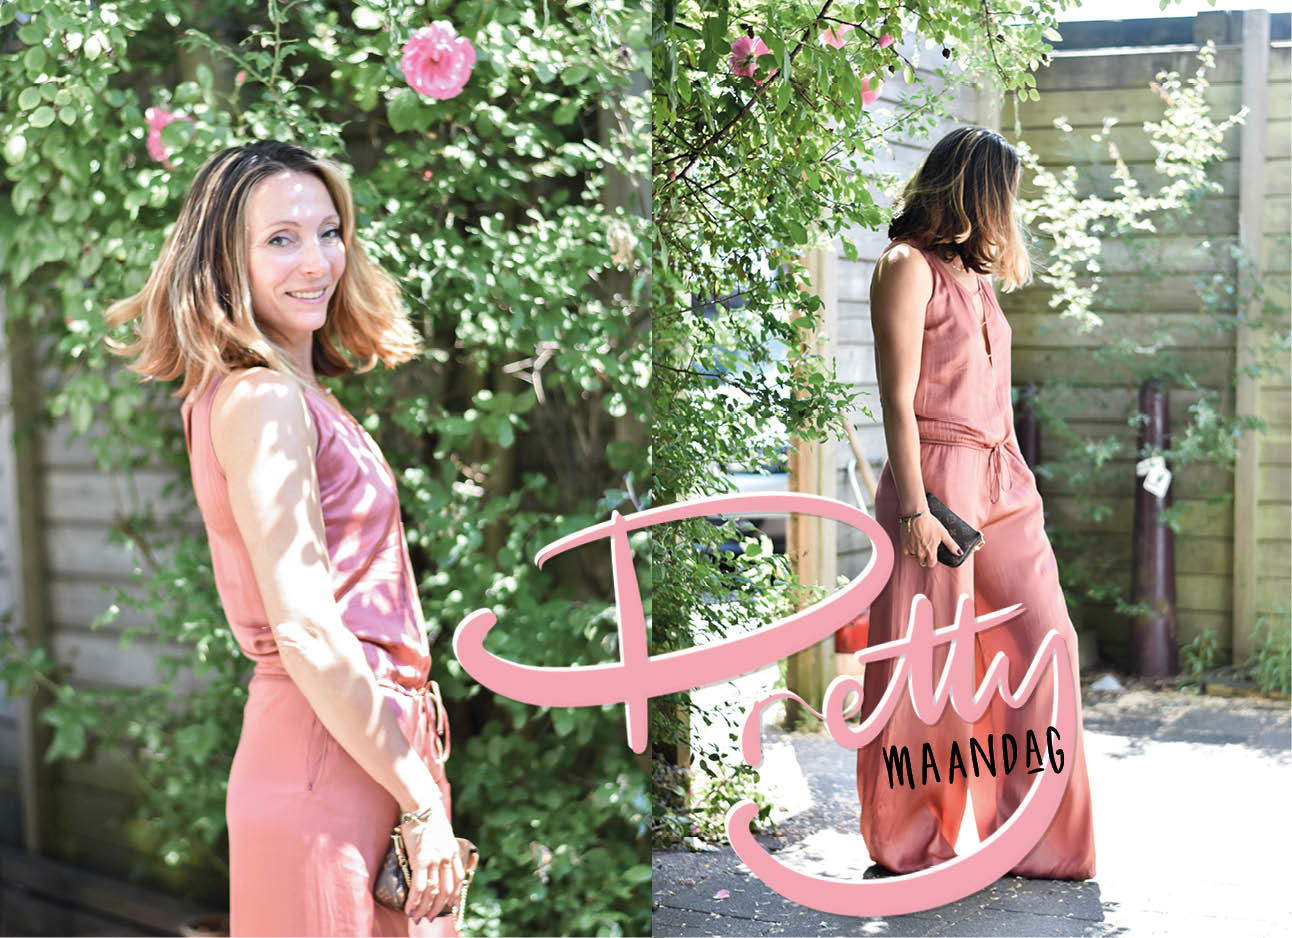 look of the day may-britt mobach lachend in de roze rozen tuin in een roze satijne jumpsuit